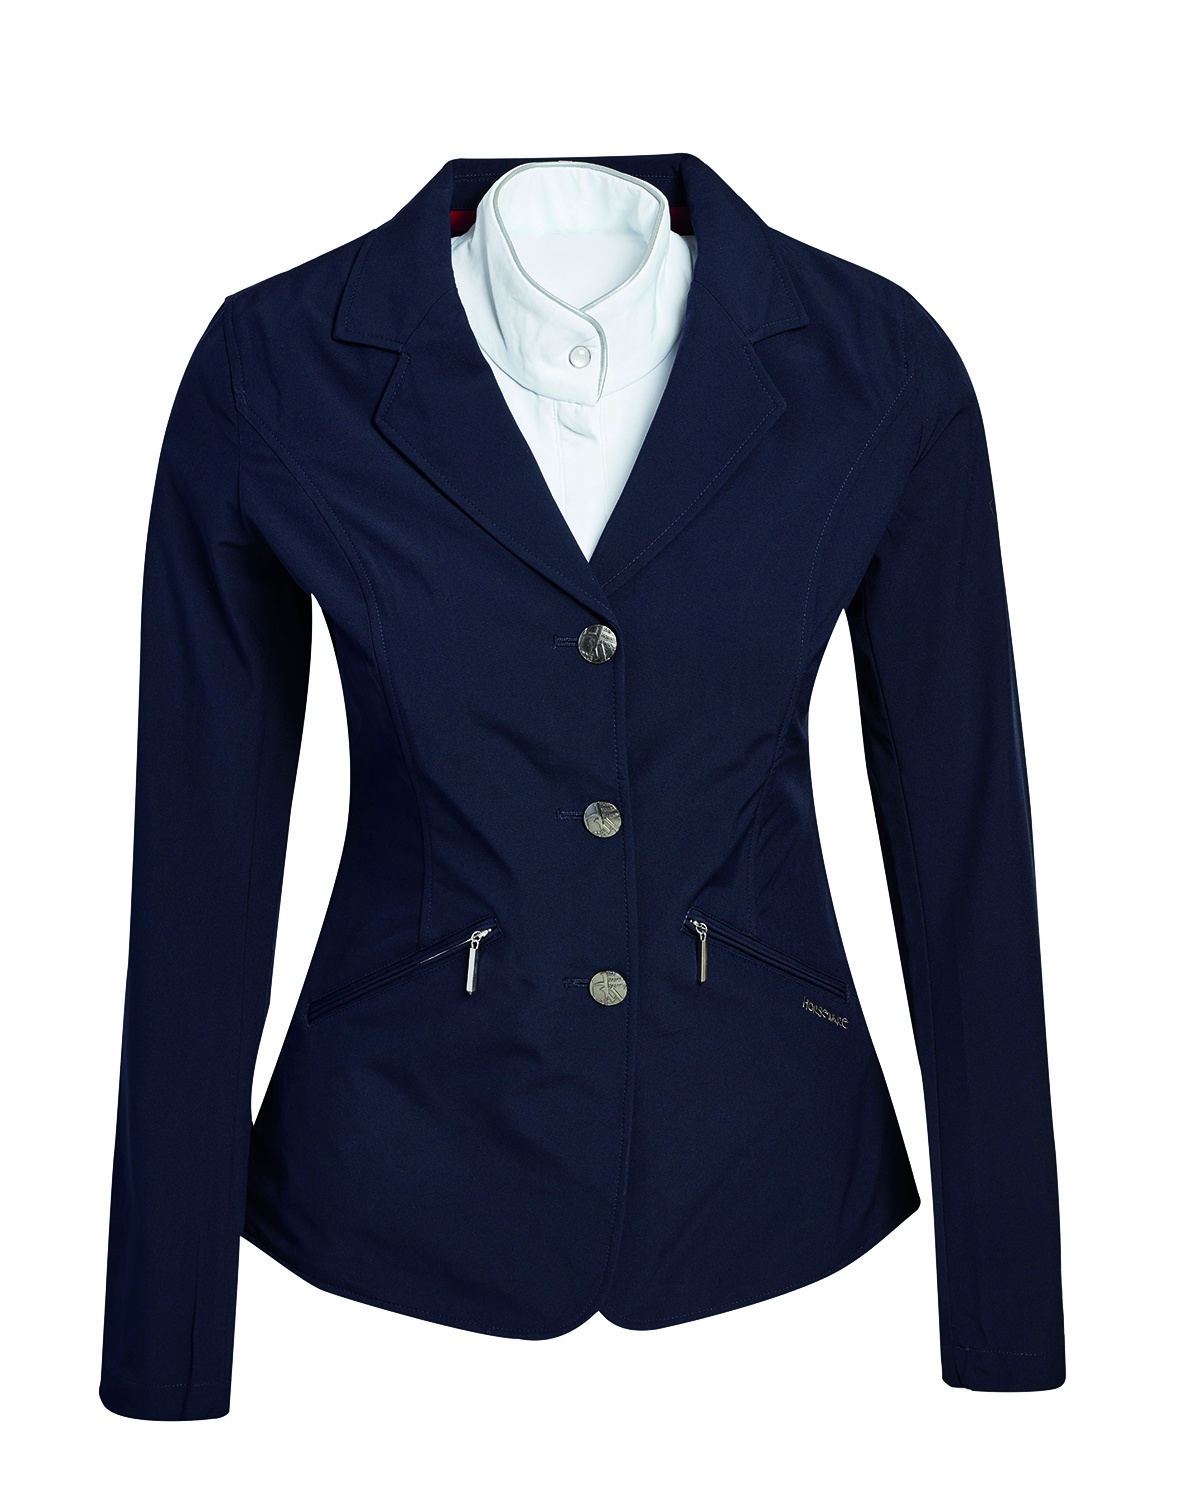 Horseware Kids Competition Show Jacket